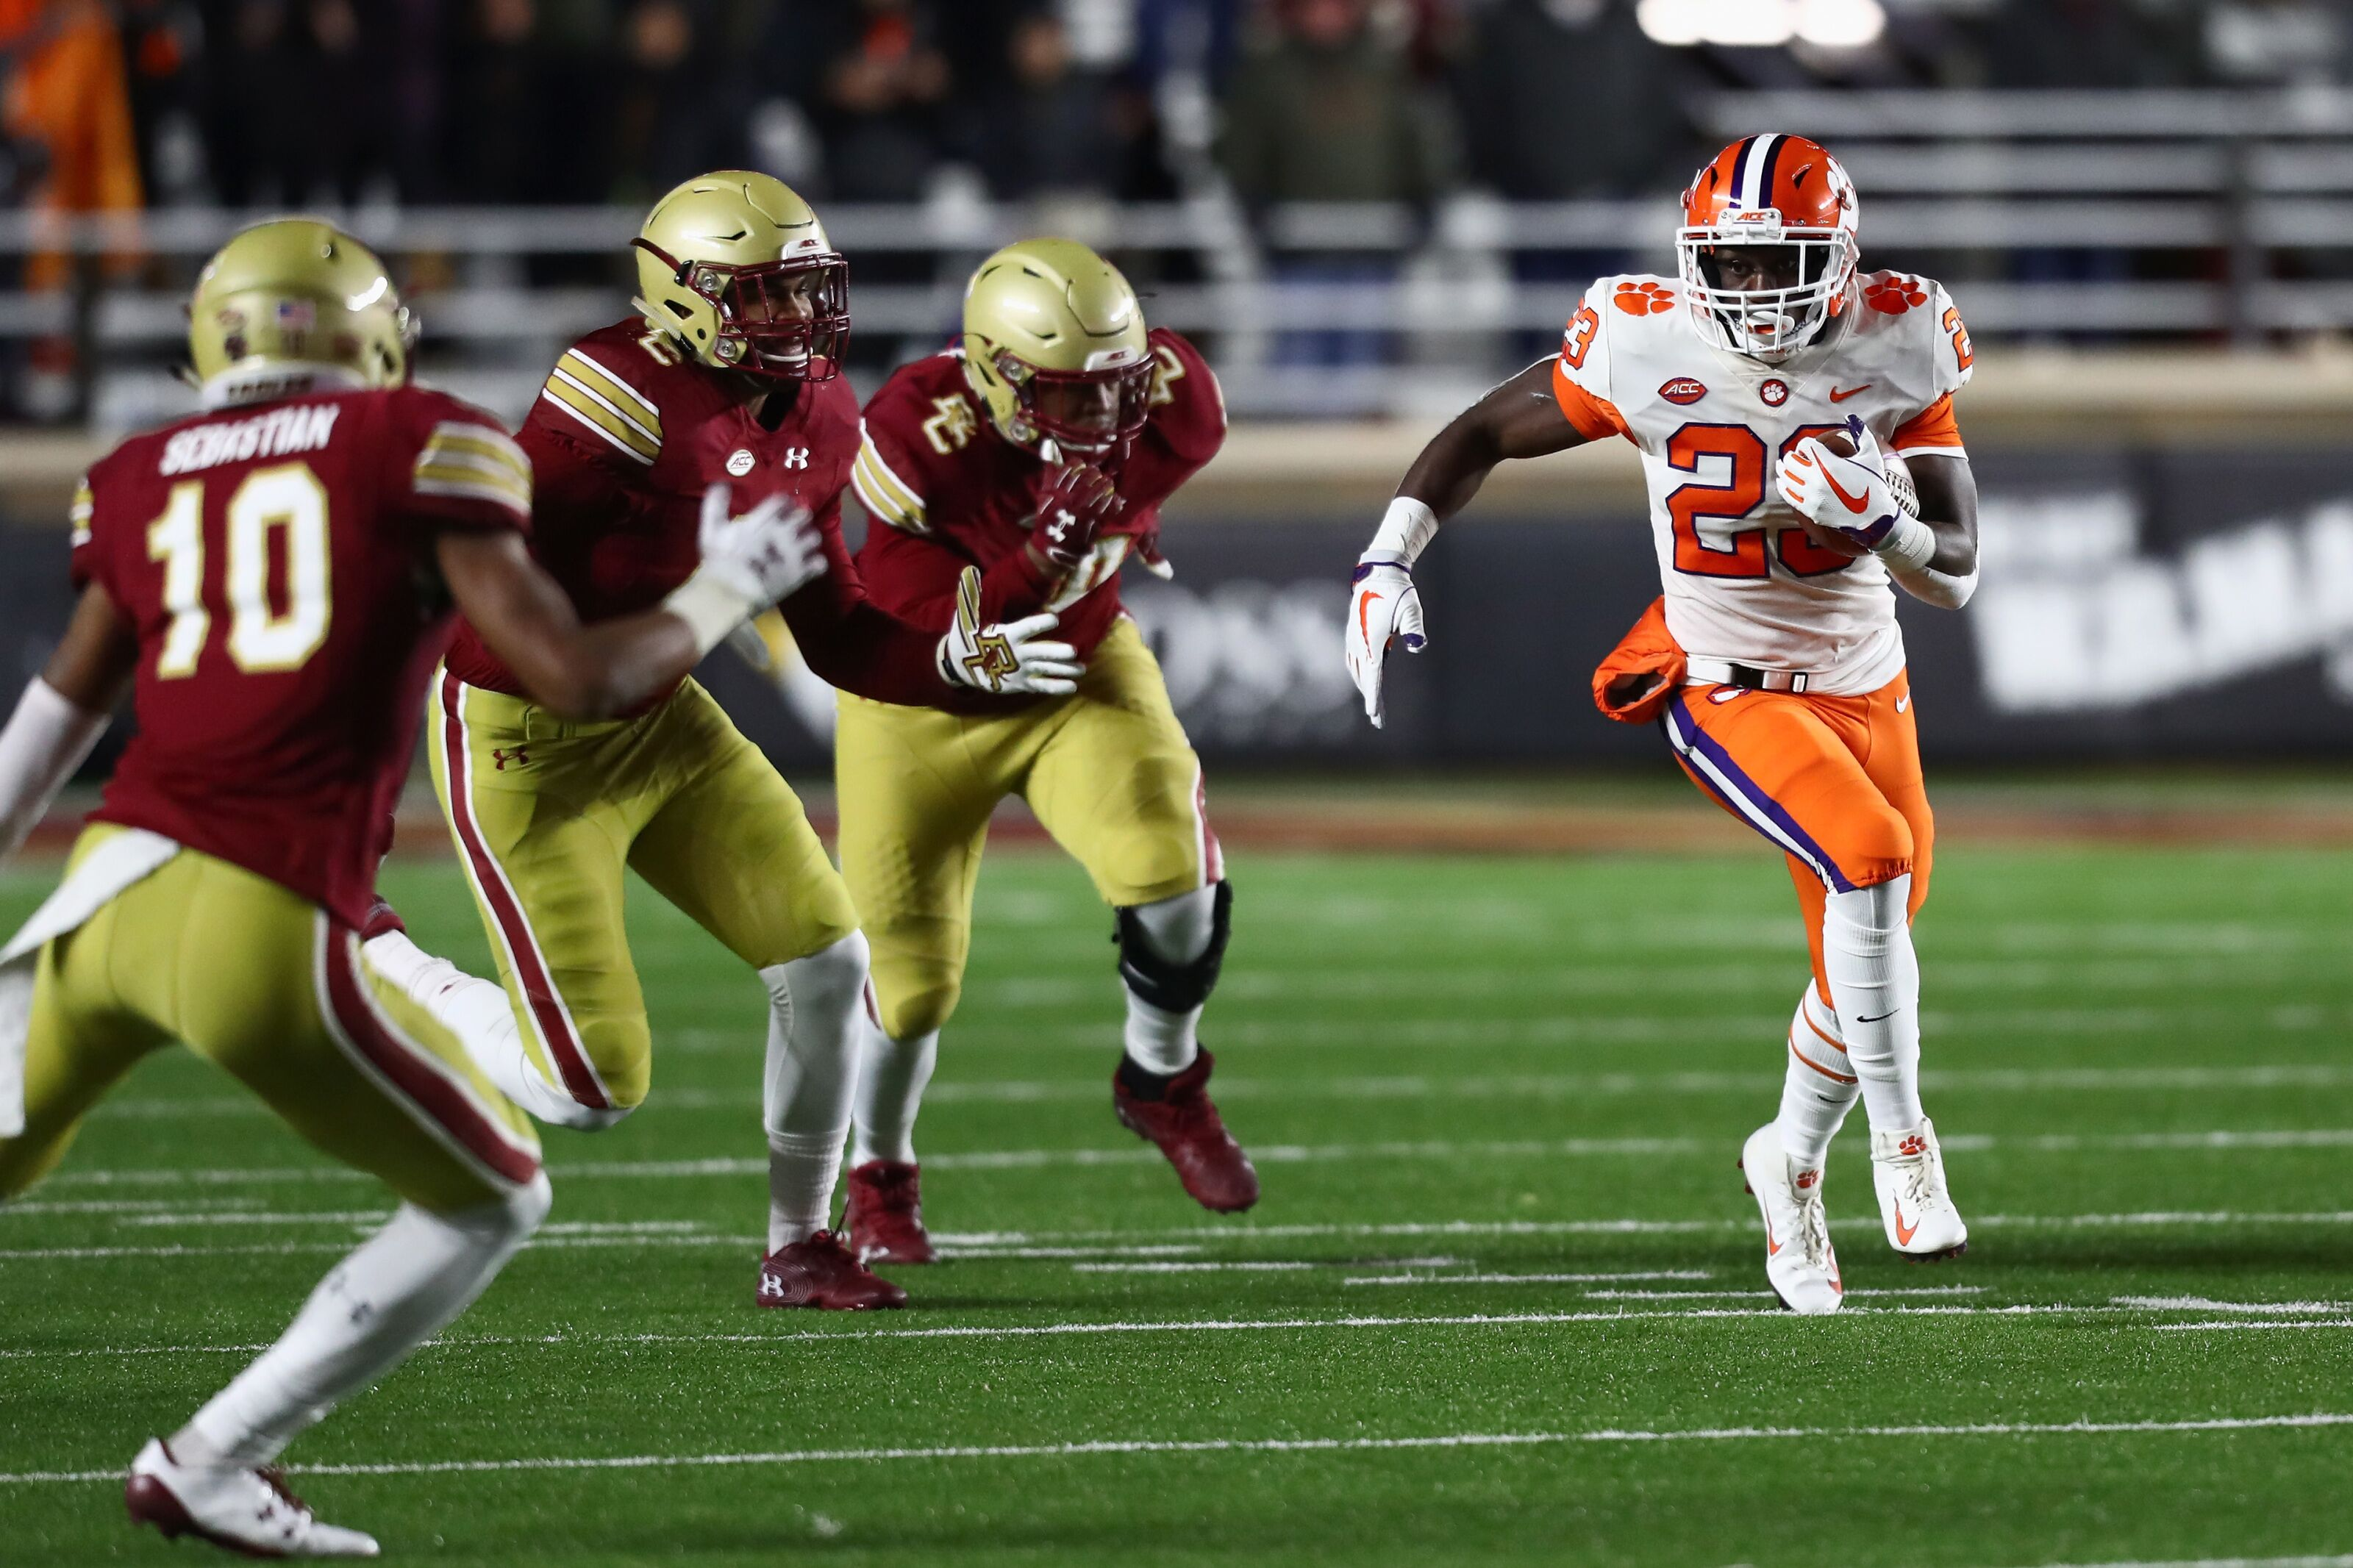 Clemson vs. Boston College: Game Announcers, TV Info, Radio, Odds, More